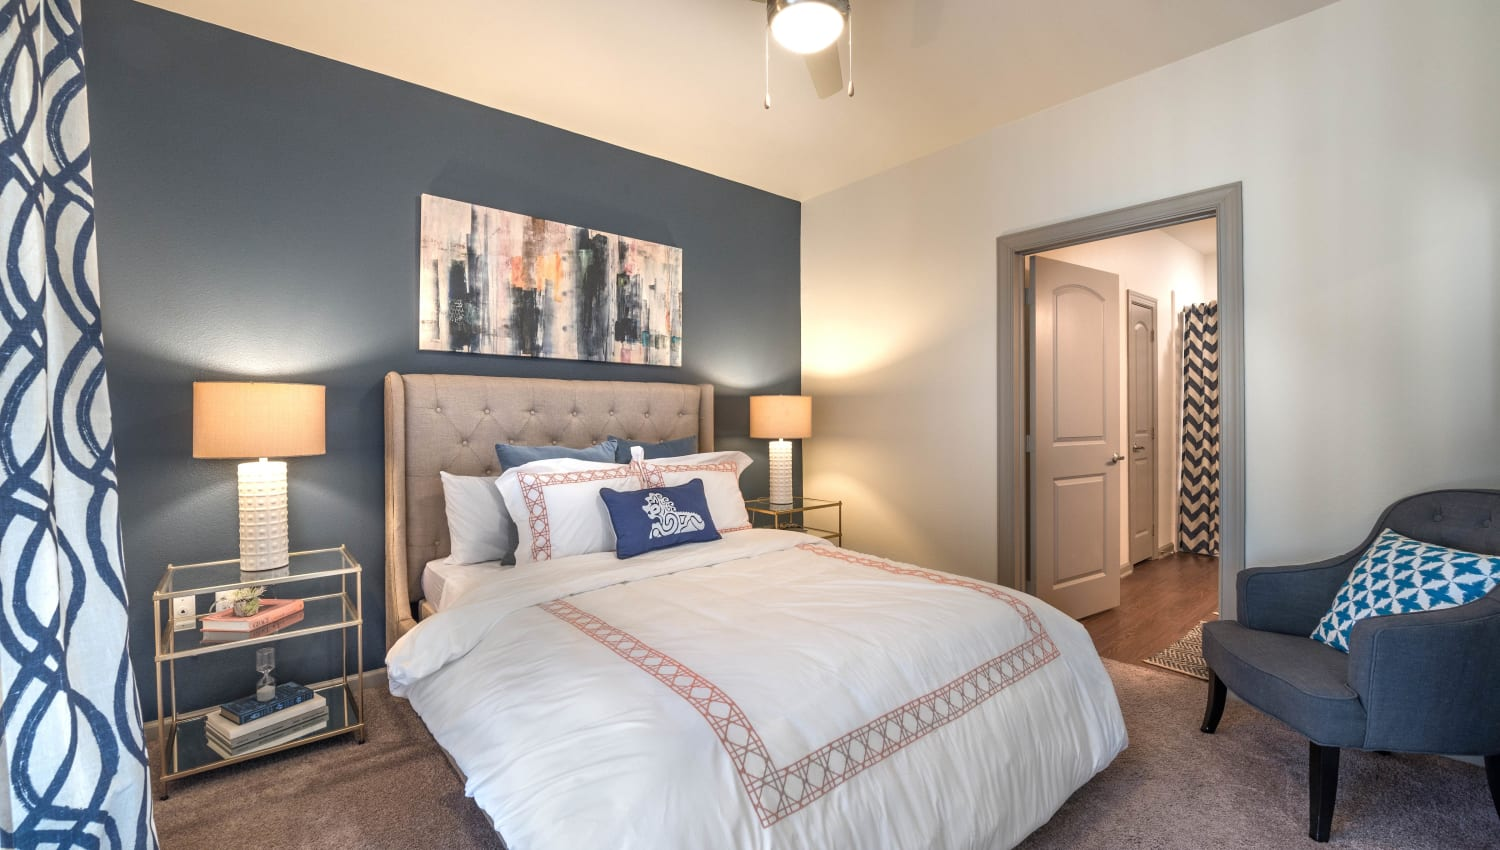 Accent wall in a model home's bedroom at Olympus Waterford in Keller, Texas